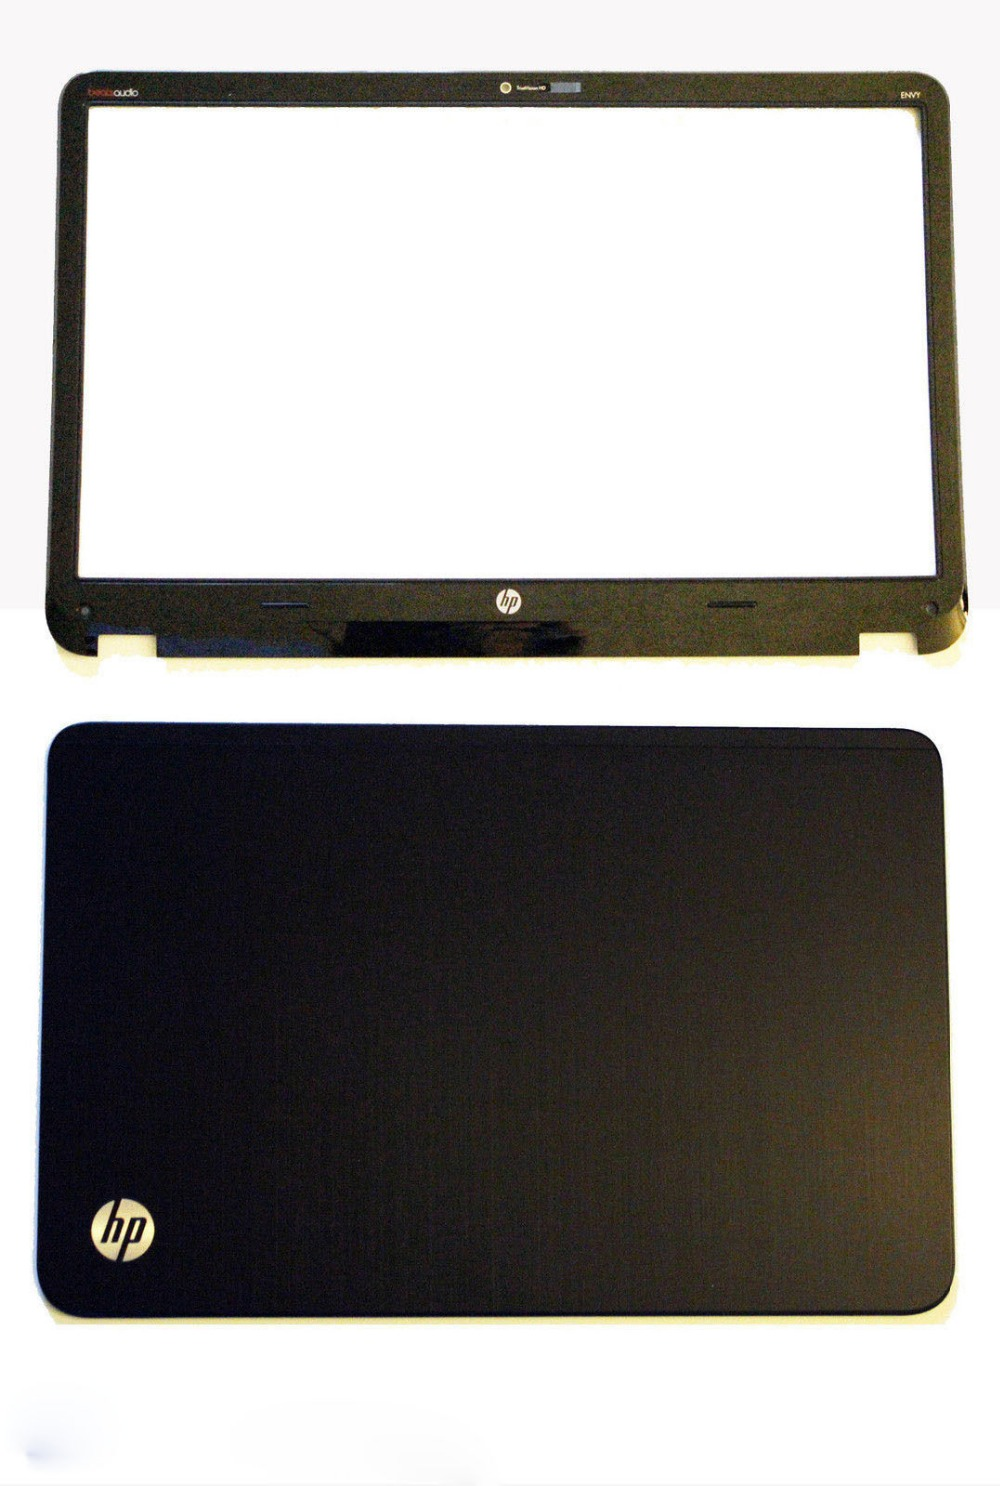 New HP Pavilion Envy6 Envy6-1000 Envy 6-1000 LCD Back Cover Case & Front Bezel 692382-001 686591-001 laptop lcd back cover screen for hp for envy 15 15 j 15 j000 15 j100 lcd front bezel cover 720535 001 b shell front bezel touch